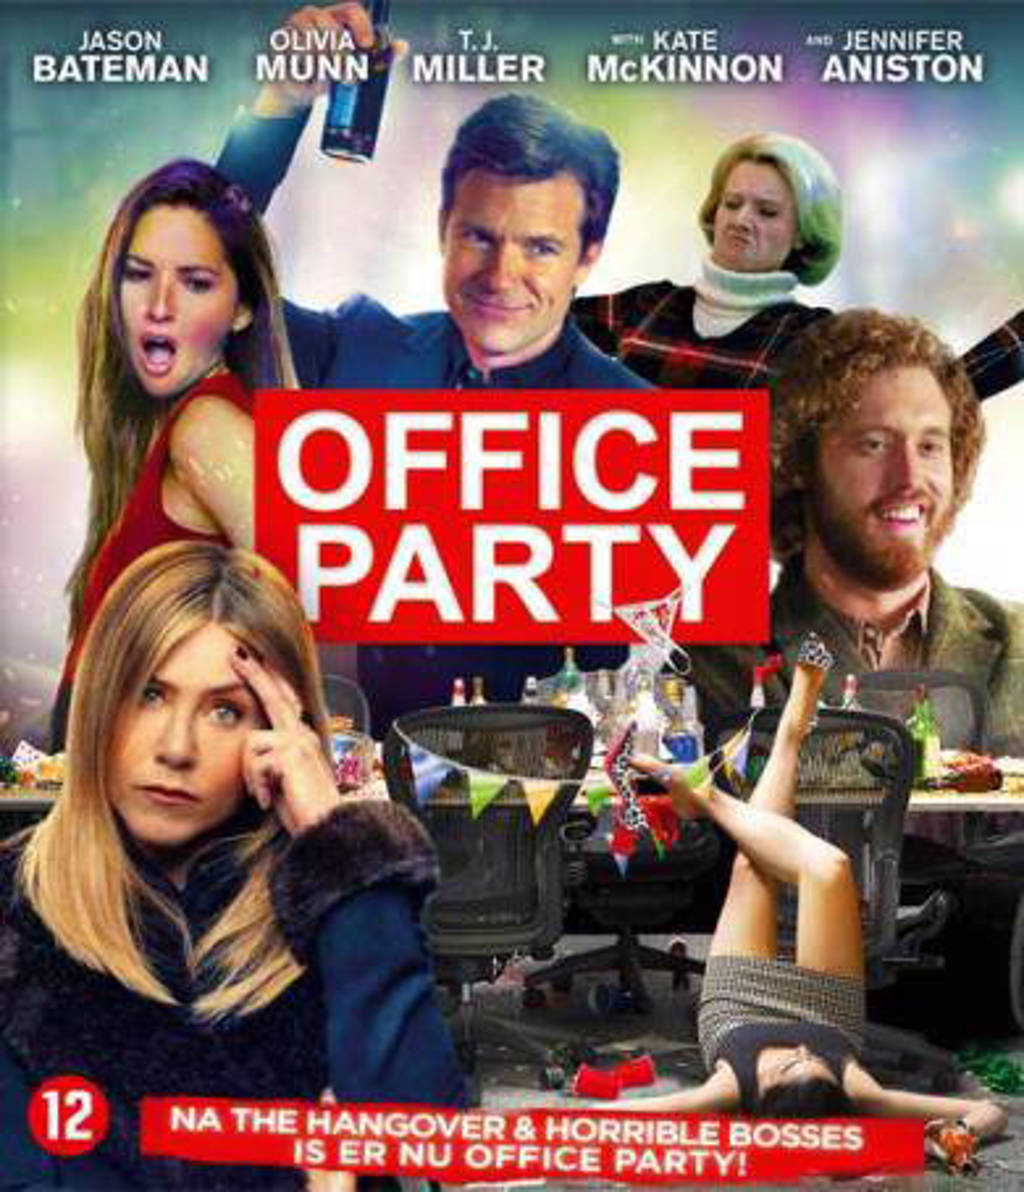 Office party (Blu-ray)